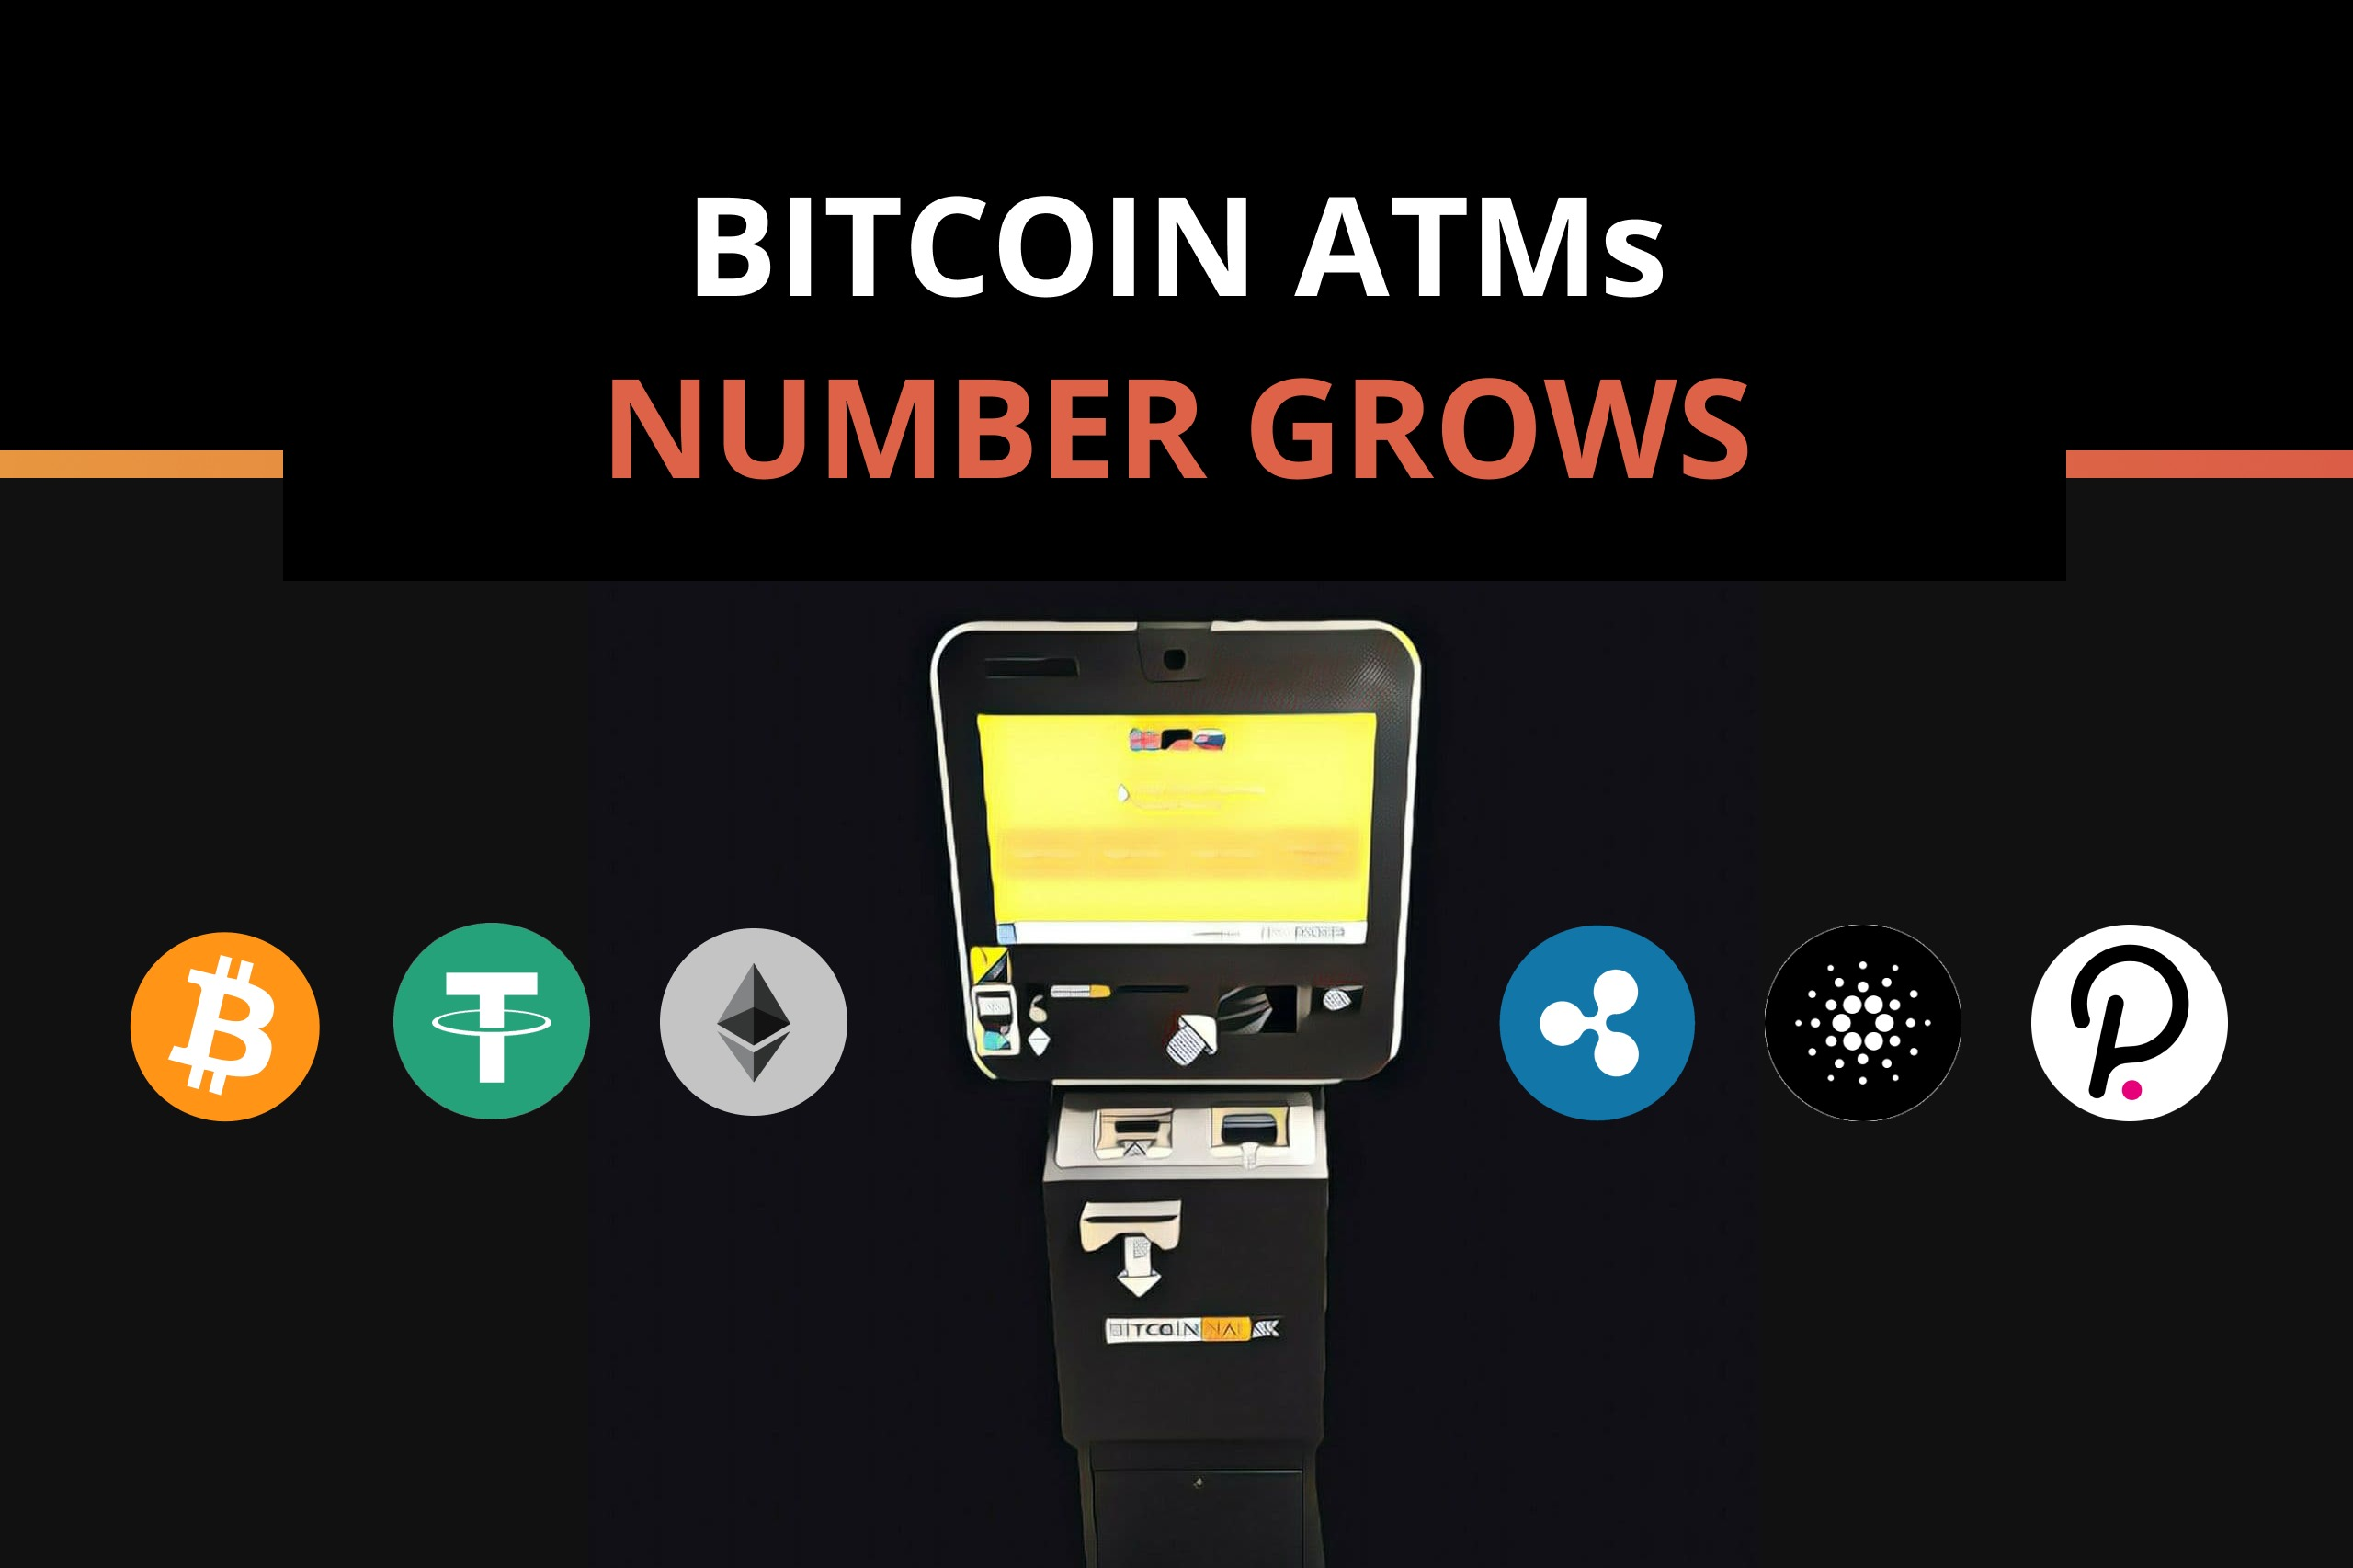 Amassive increase of the Bitcoin ATMs in the US over the past year